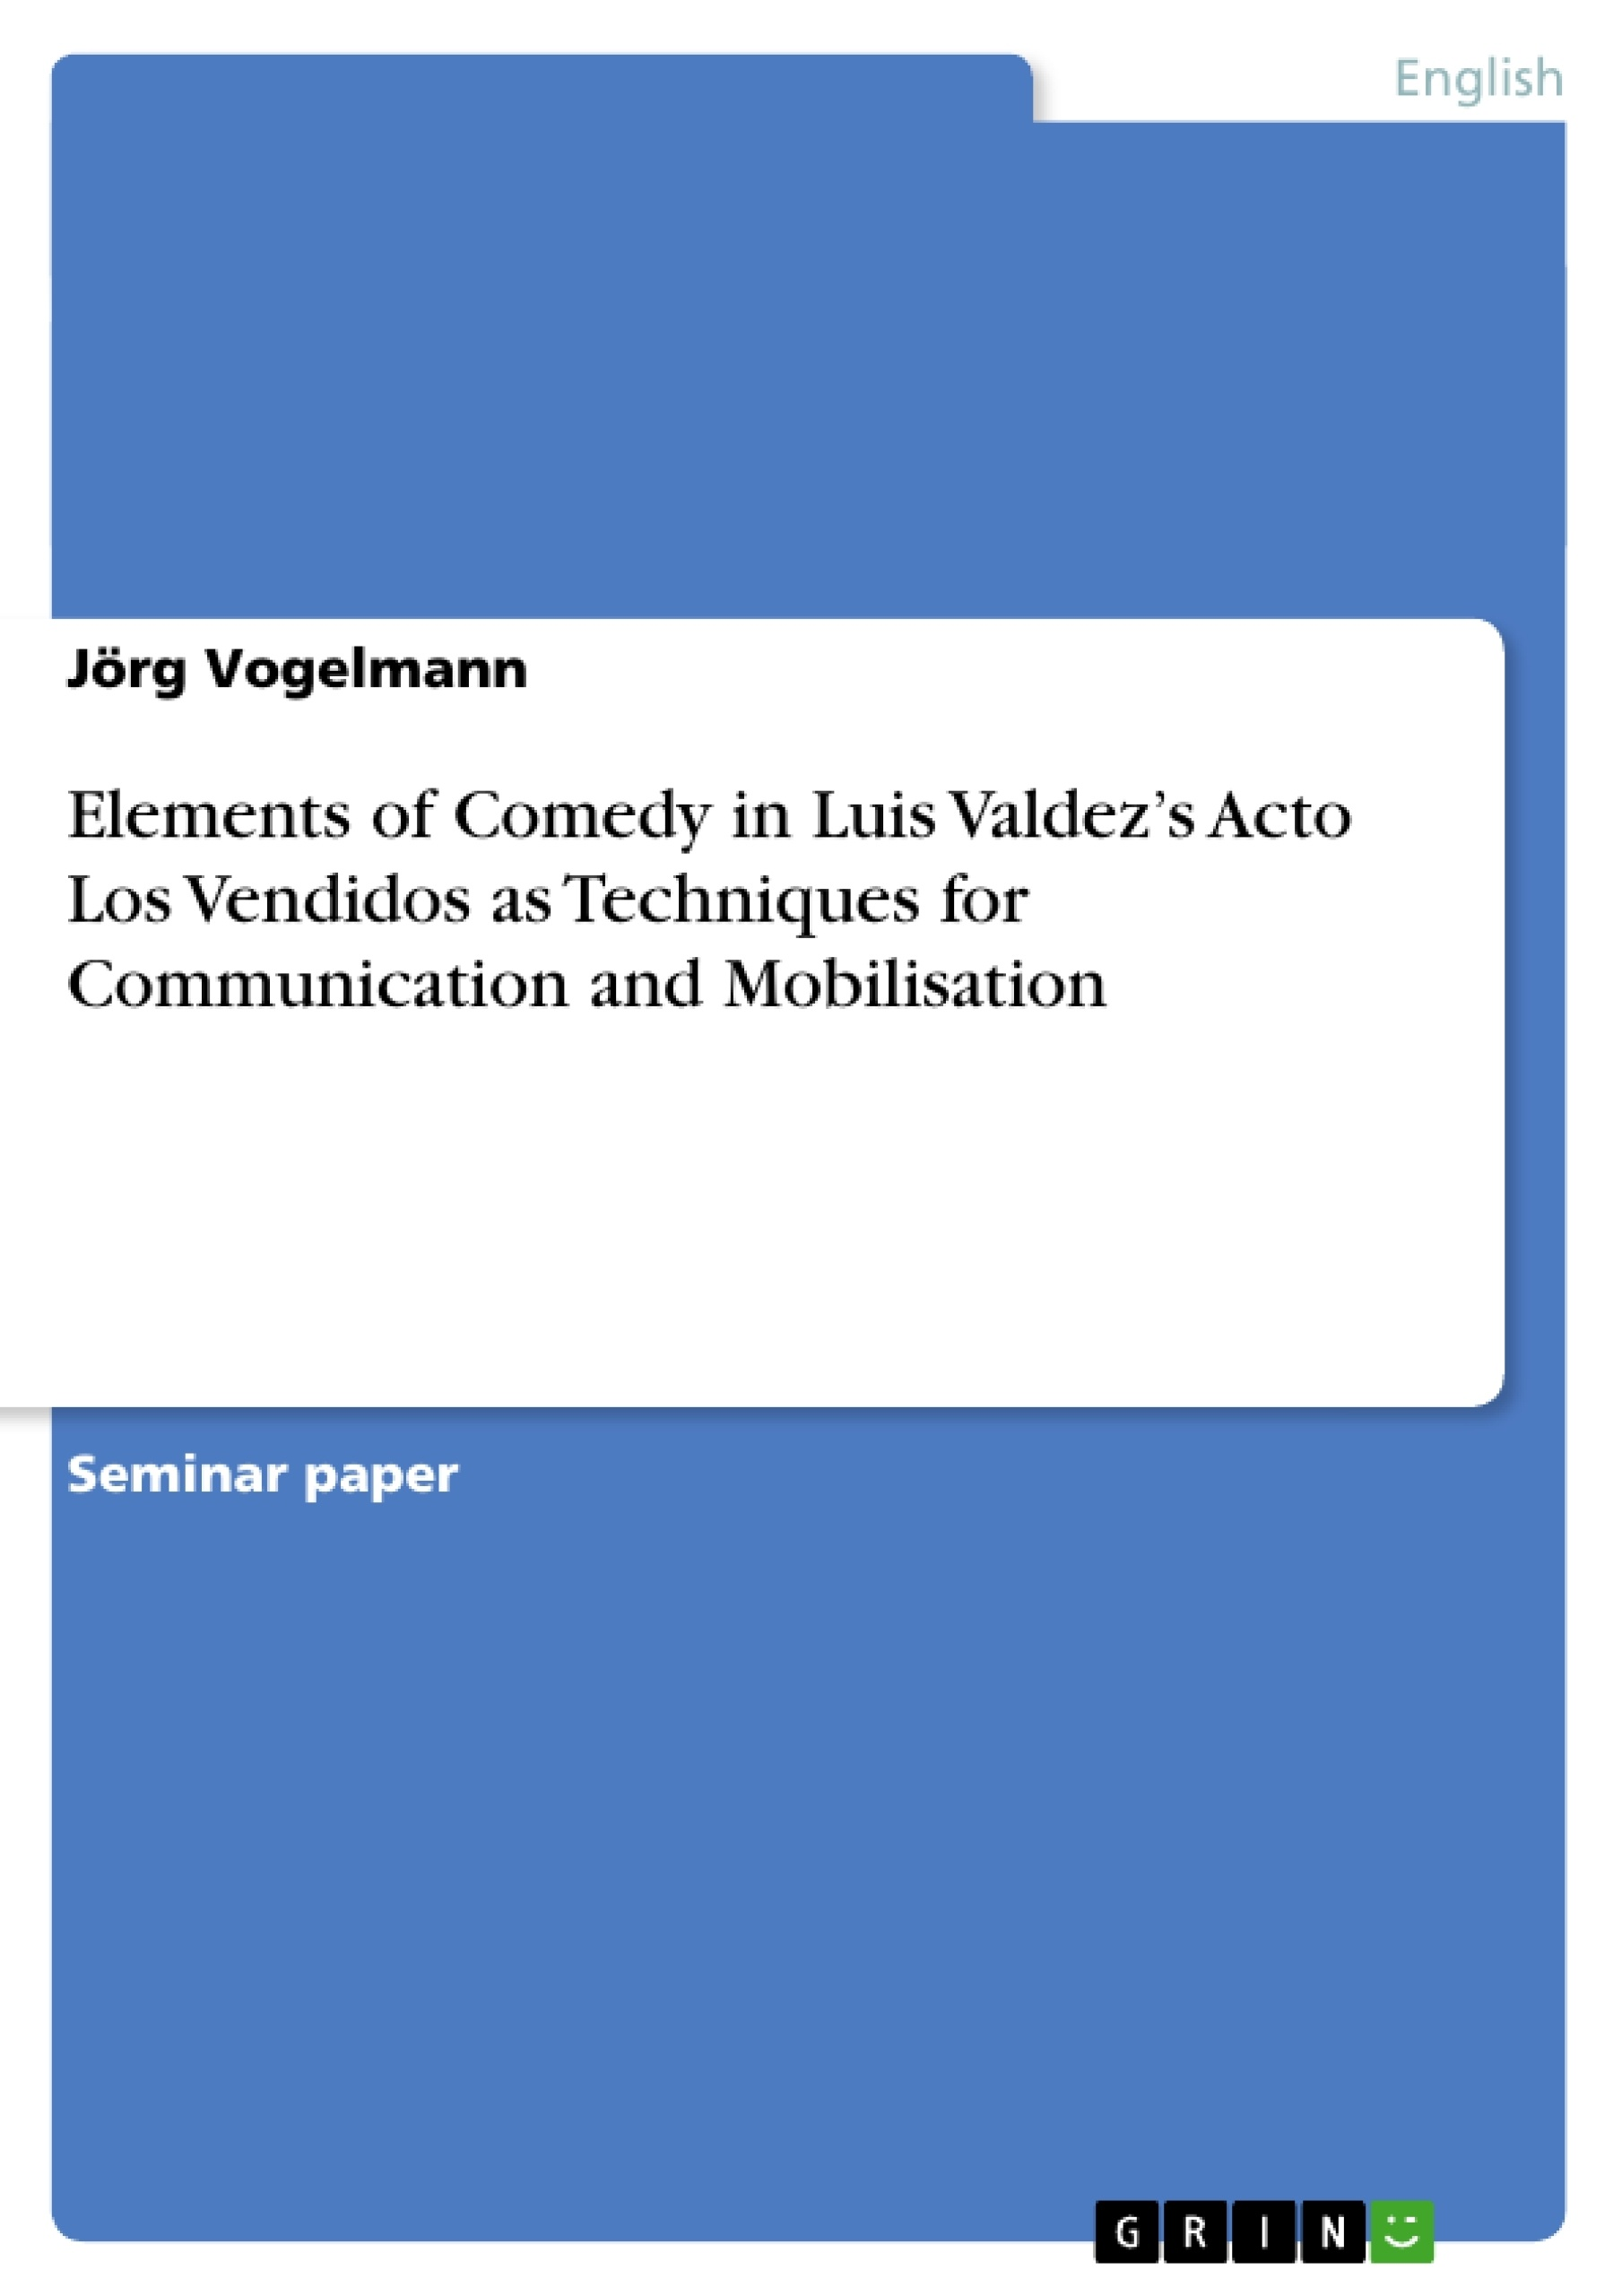 elements of comedy in luis valdez s acto los vendidos as elements of comedy in luis valdez s acto los vendidos as publish your master s thesis bachelor s thesis essay or term paper